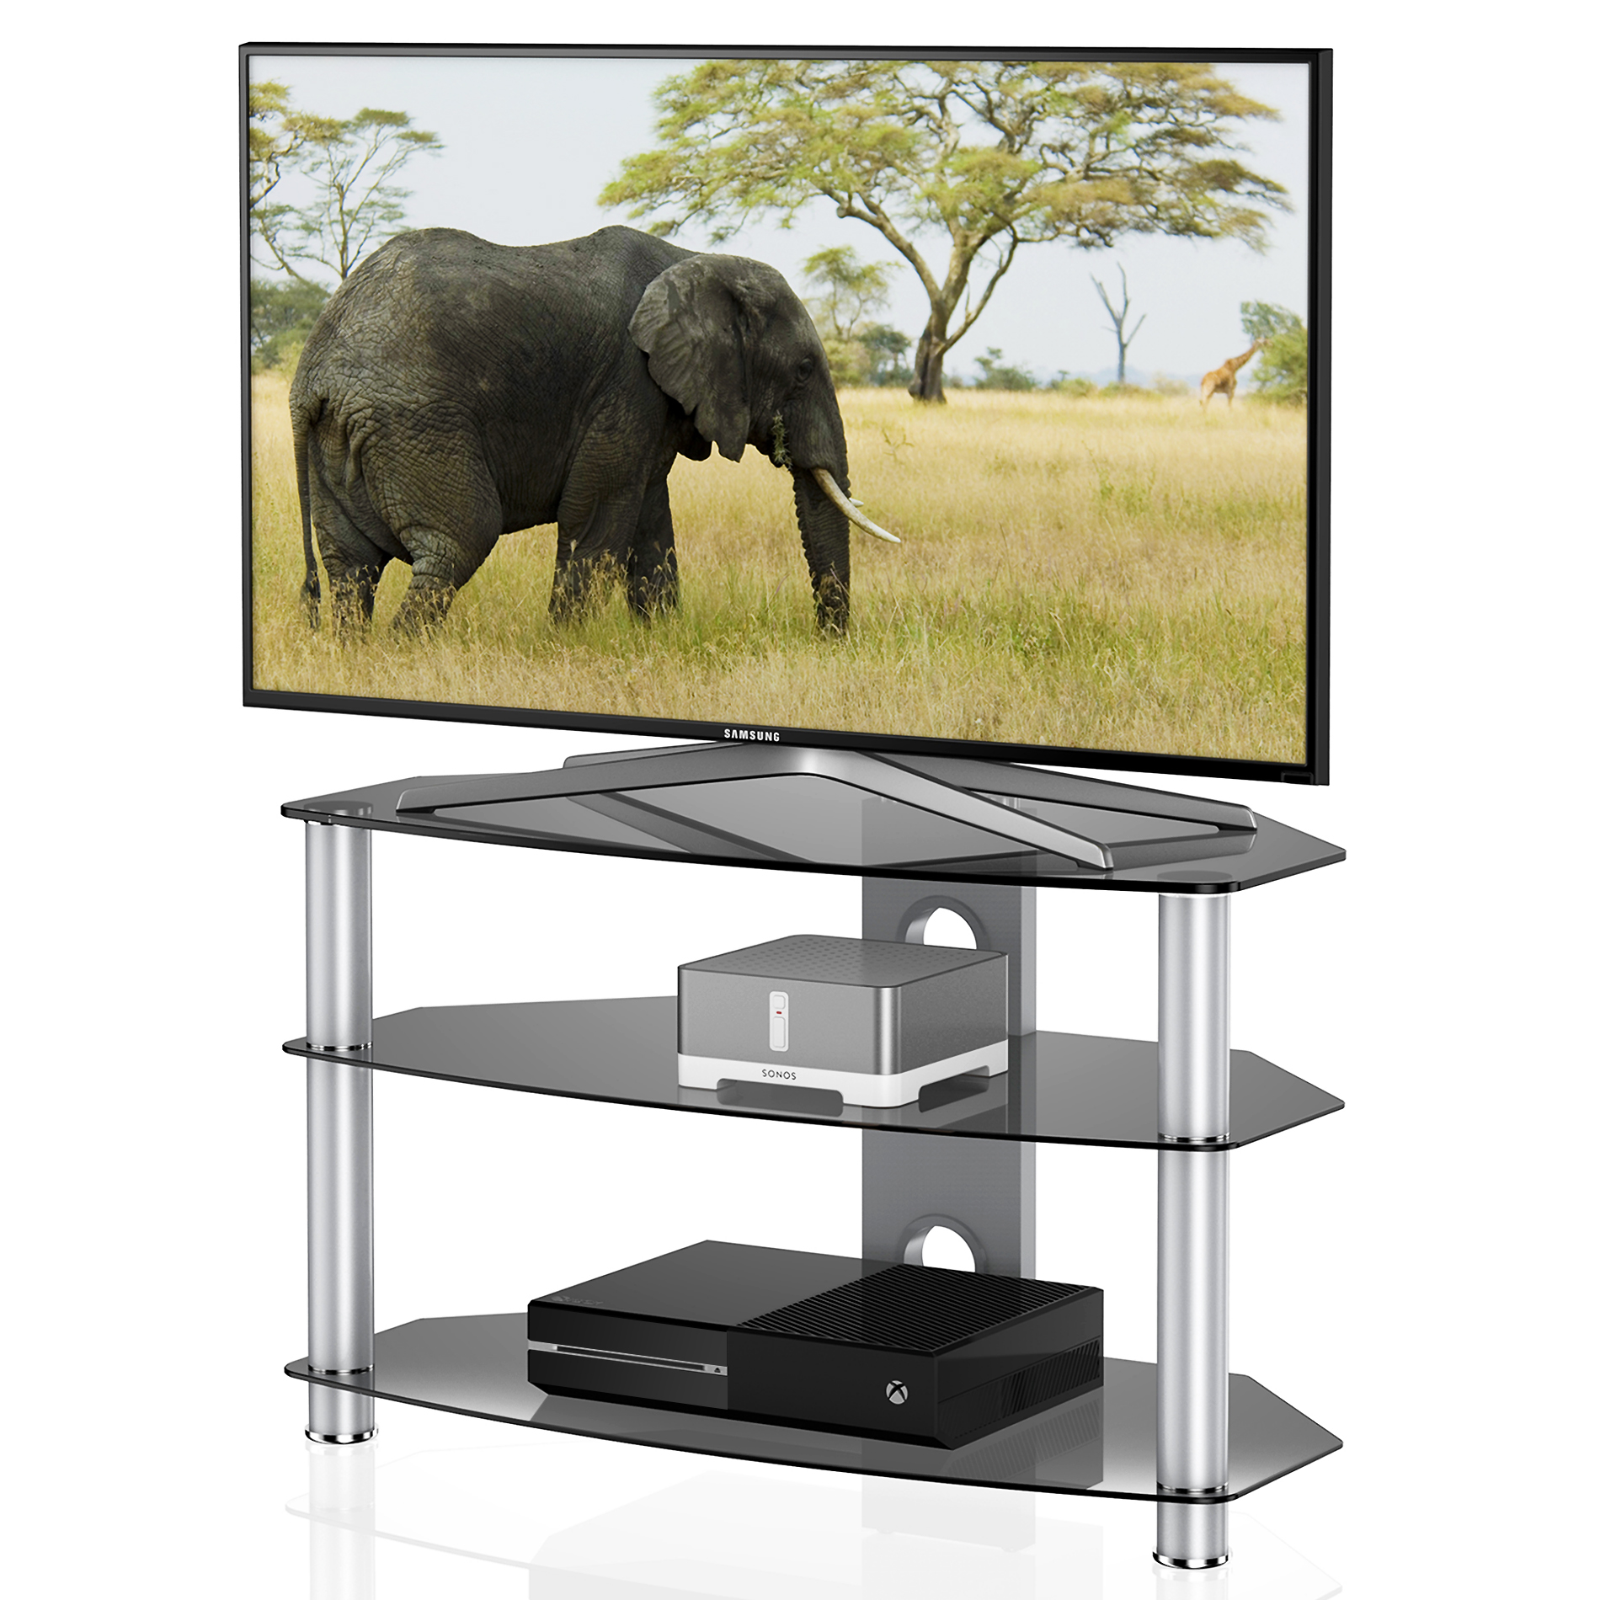 Fitueyes Tv Stand with Swivel Mount Bracket for 42-80 Inch T